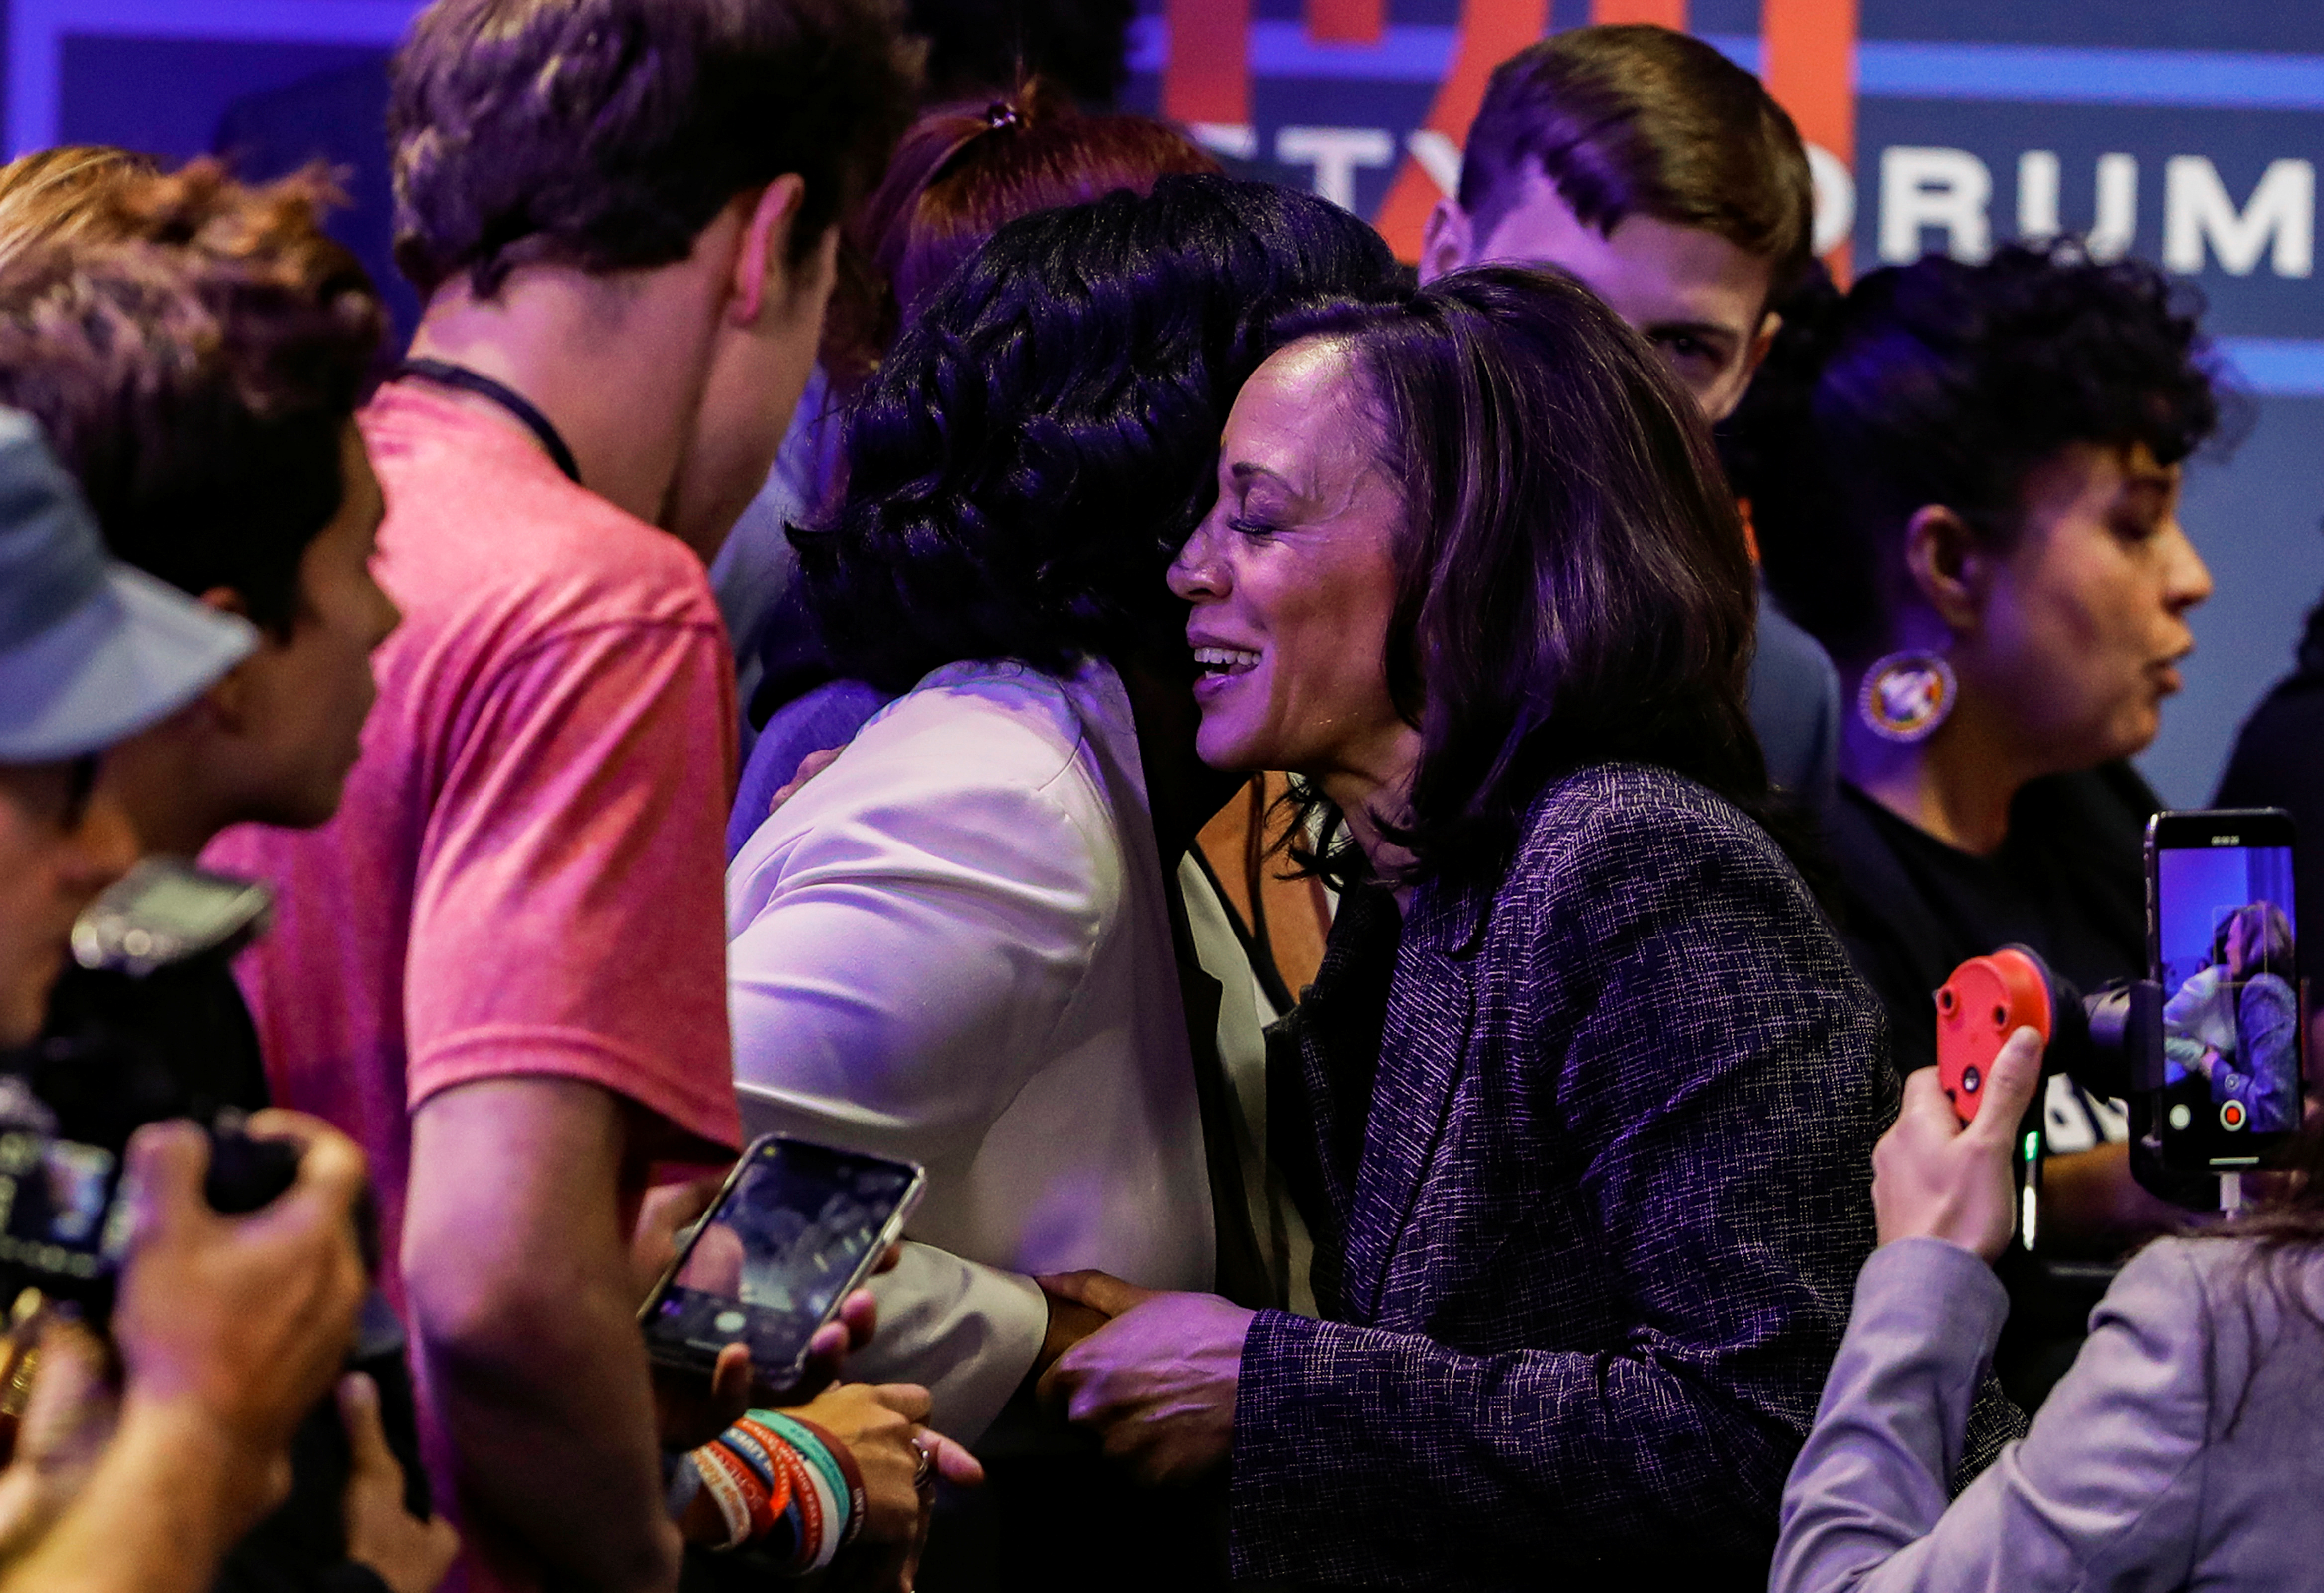 U.S. Democratic presidential candidate Sen. Kamala Harris (D-CA) meets with an audience member during a forum held by gun safety organizations the Giffords group and March For Our Lives in Las Vegas, Nevada, U.S. October 2, 2019. REUTERS/Steve Marcus